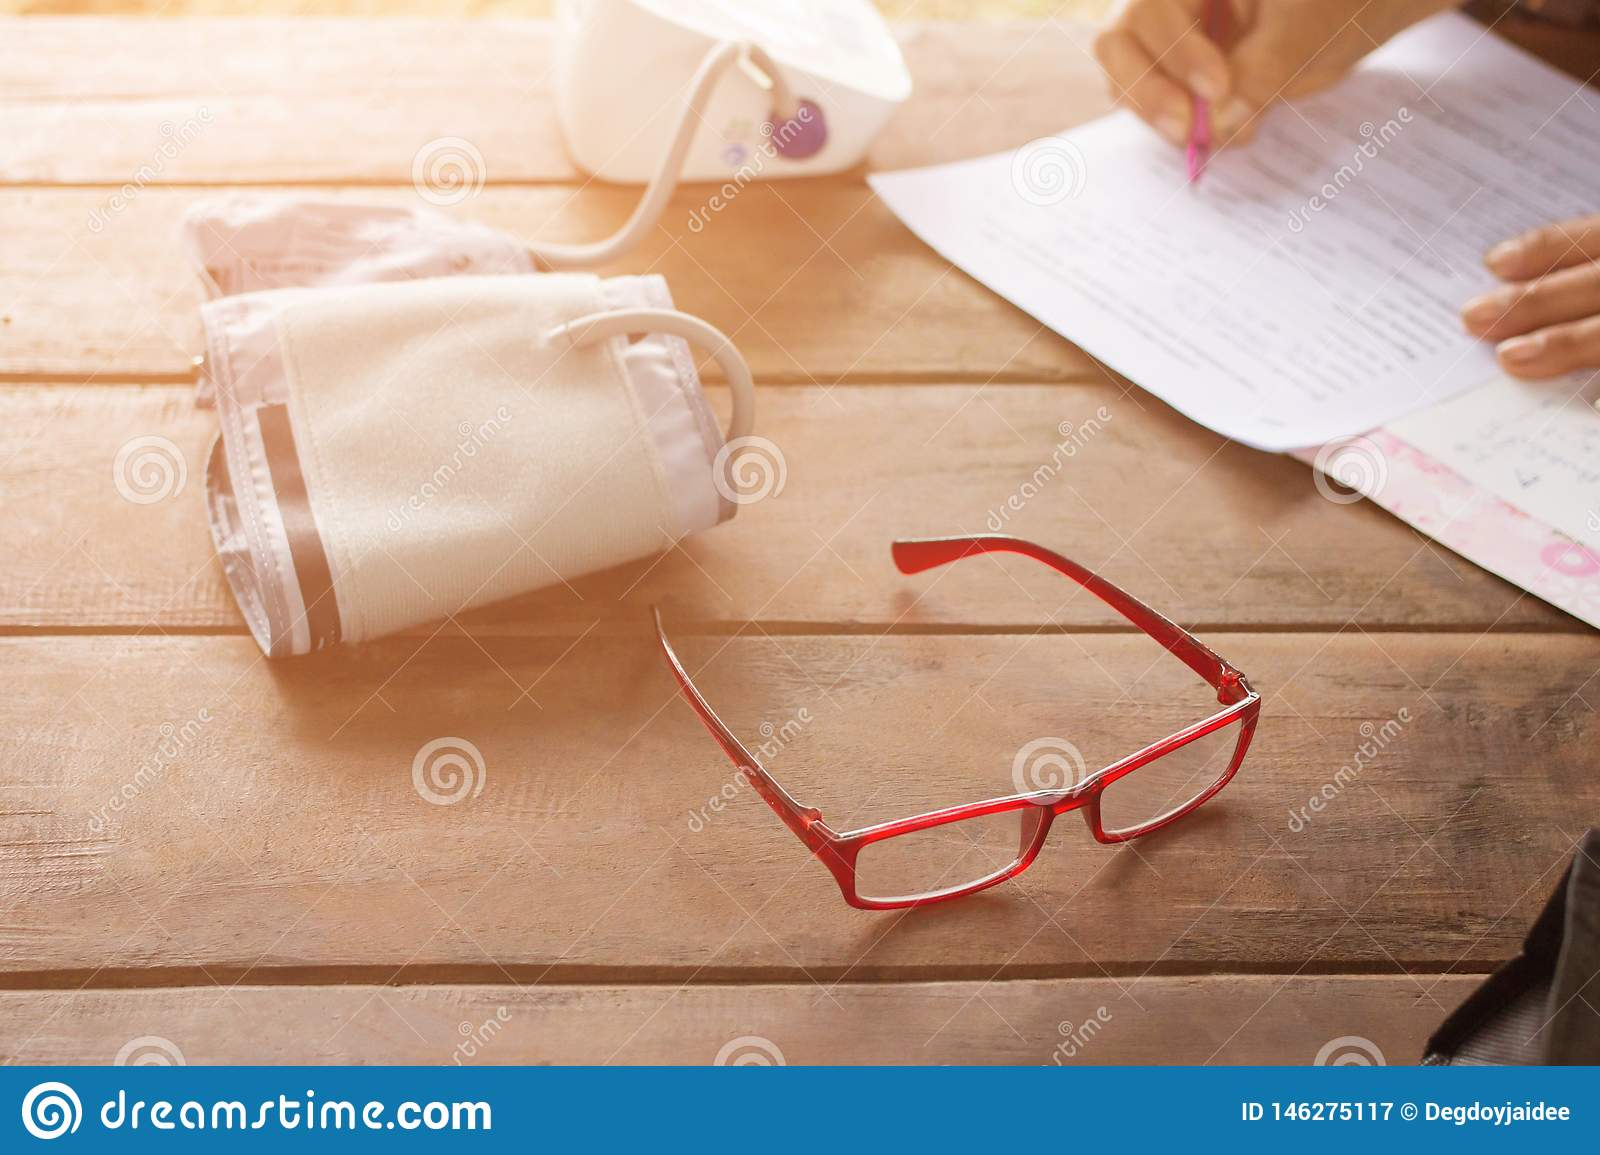 Red glasses with Blood Pressure Monitors with Blood Pressure Monitors, Woman holding pens to write inspection reports